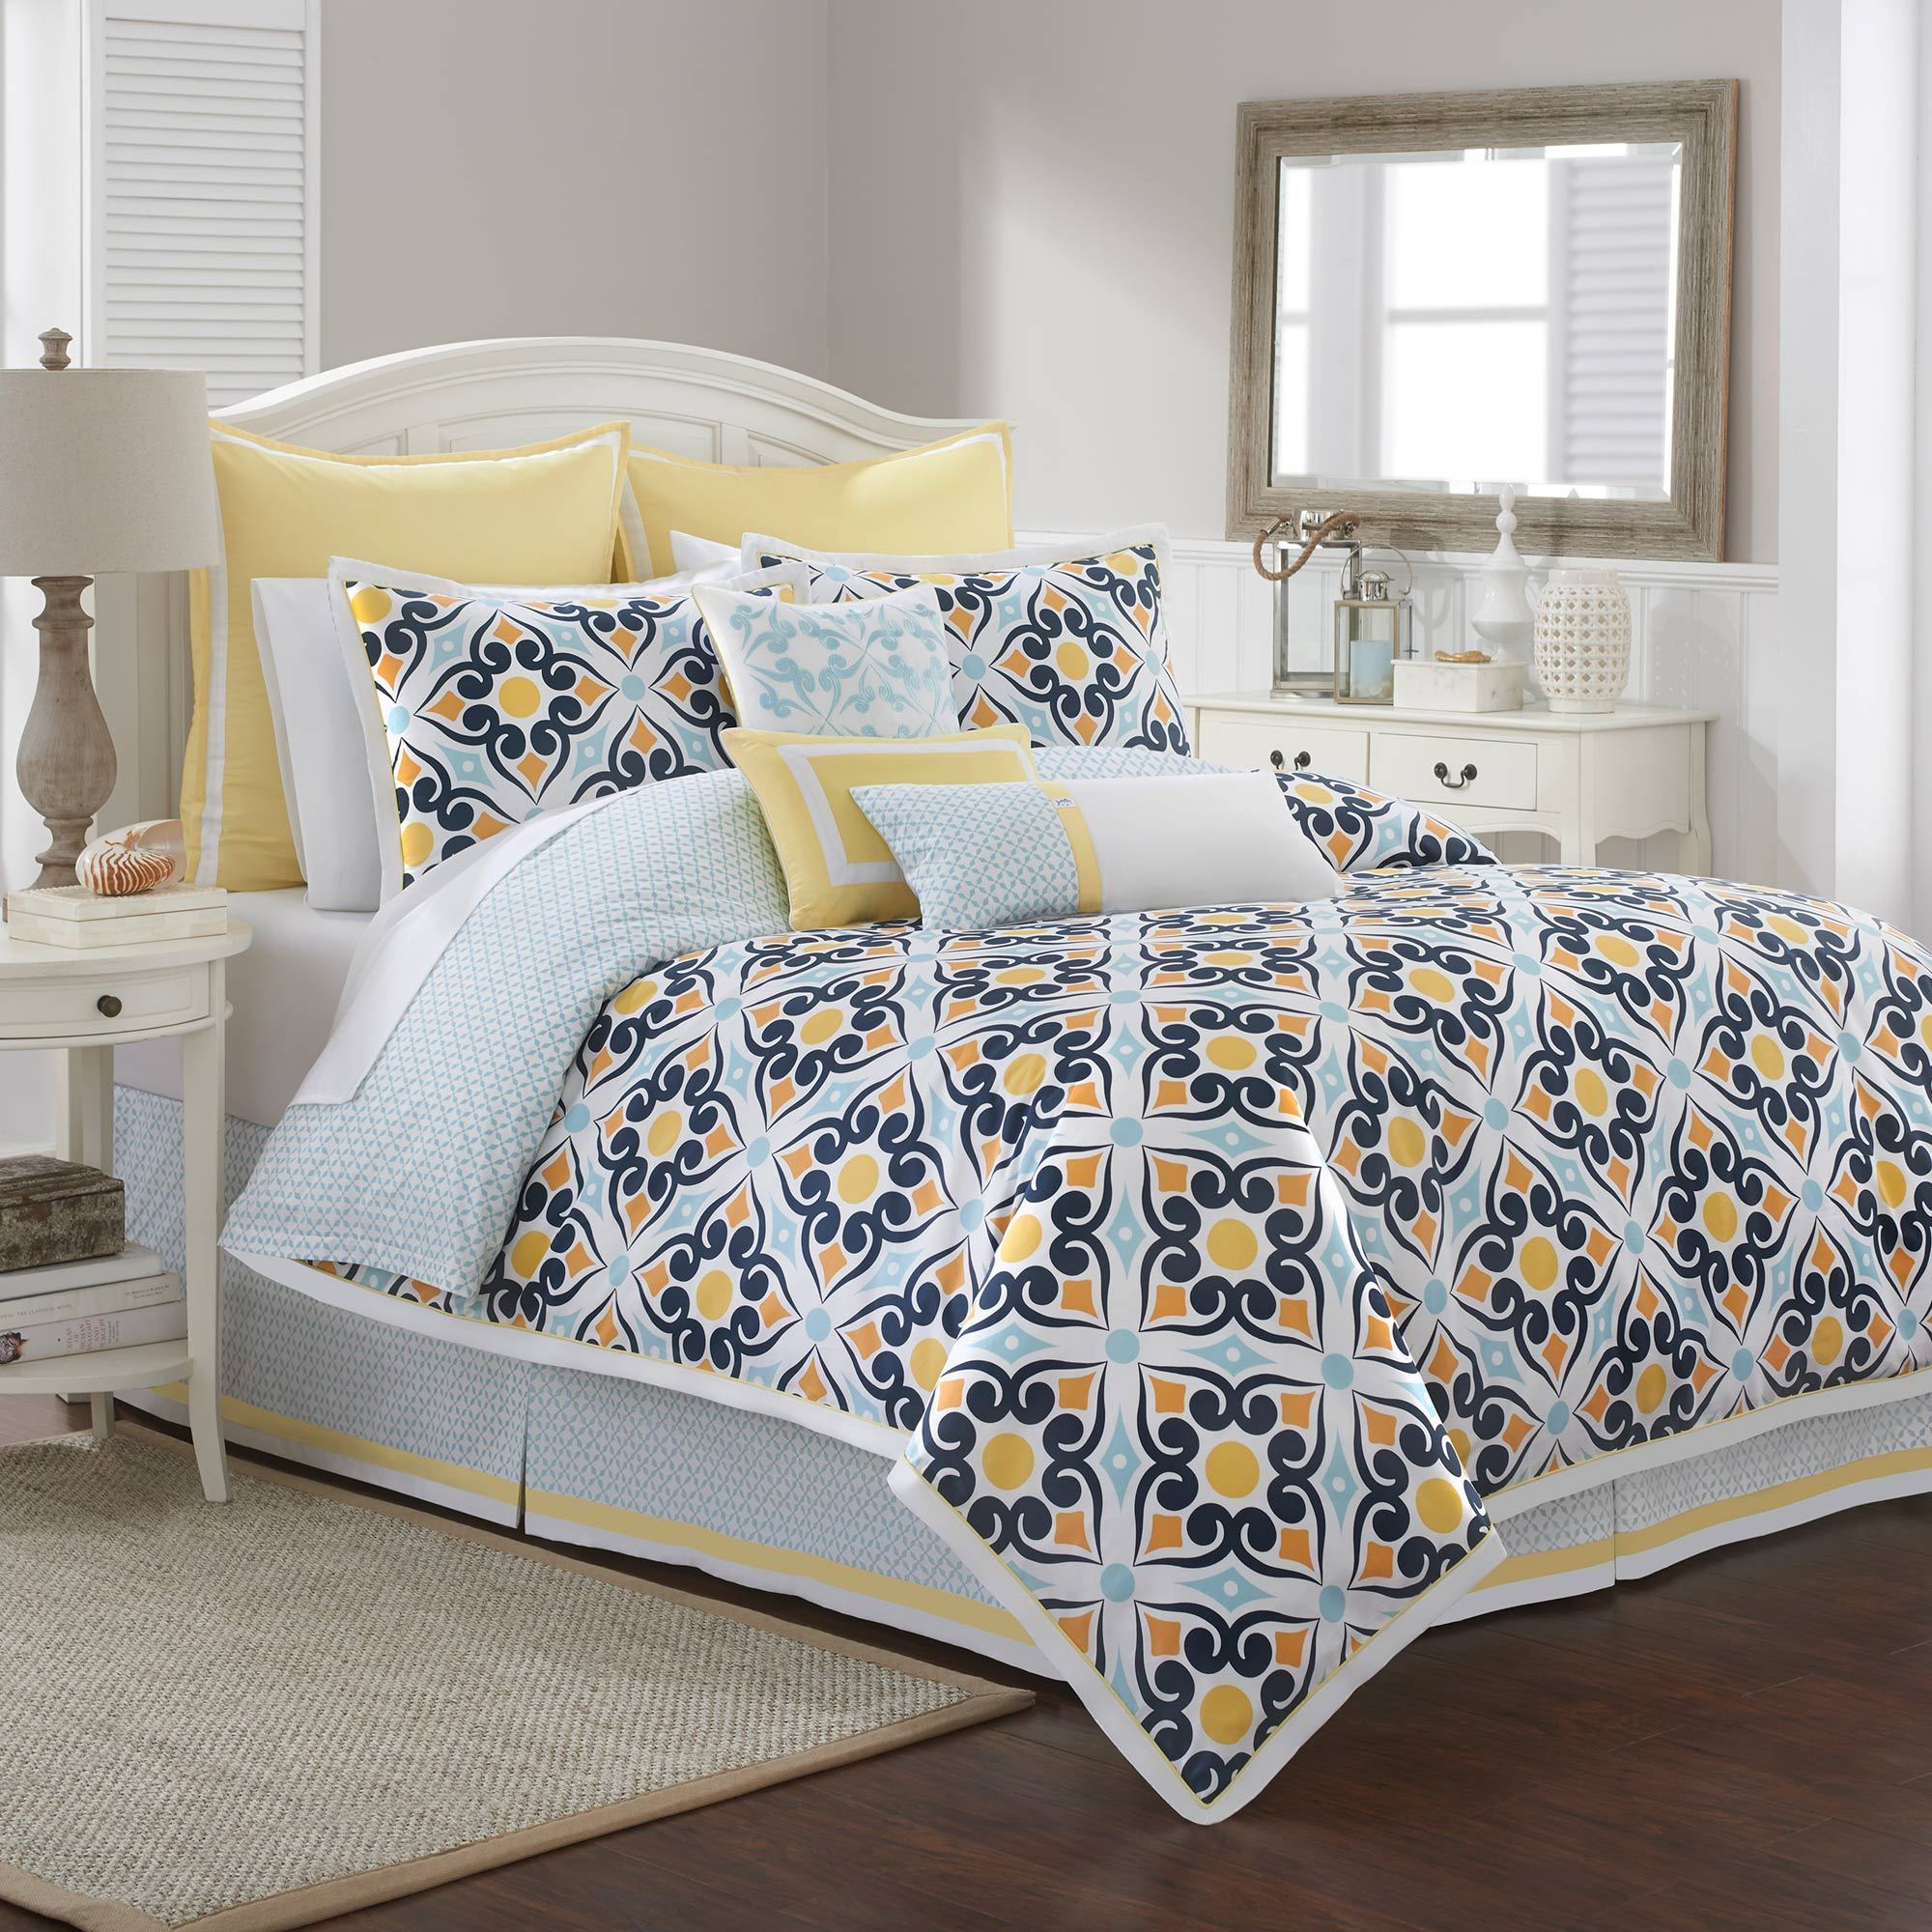 colors southern blue pillows bedding aztec comforter juvi vcny navy hotel multiple brown available included piece tide decorative kids and home set orange